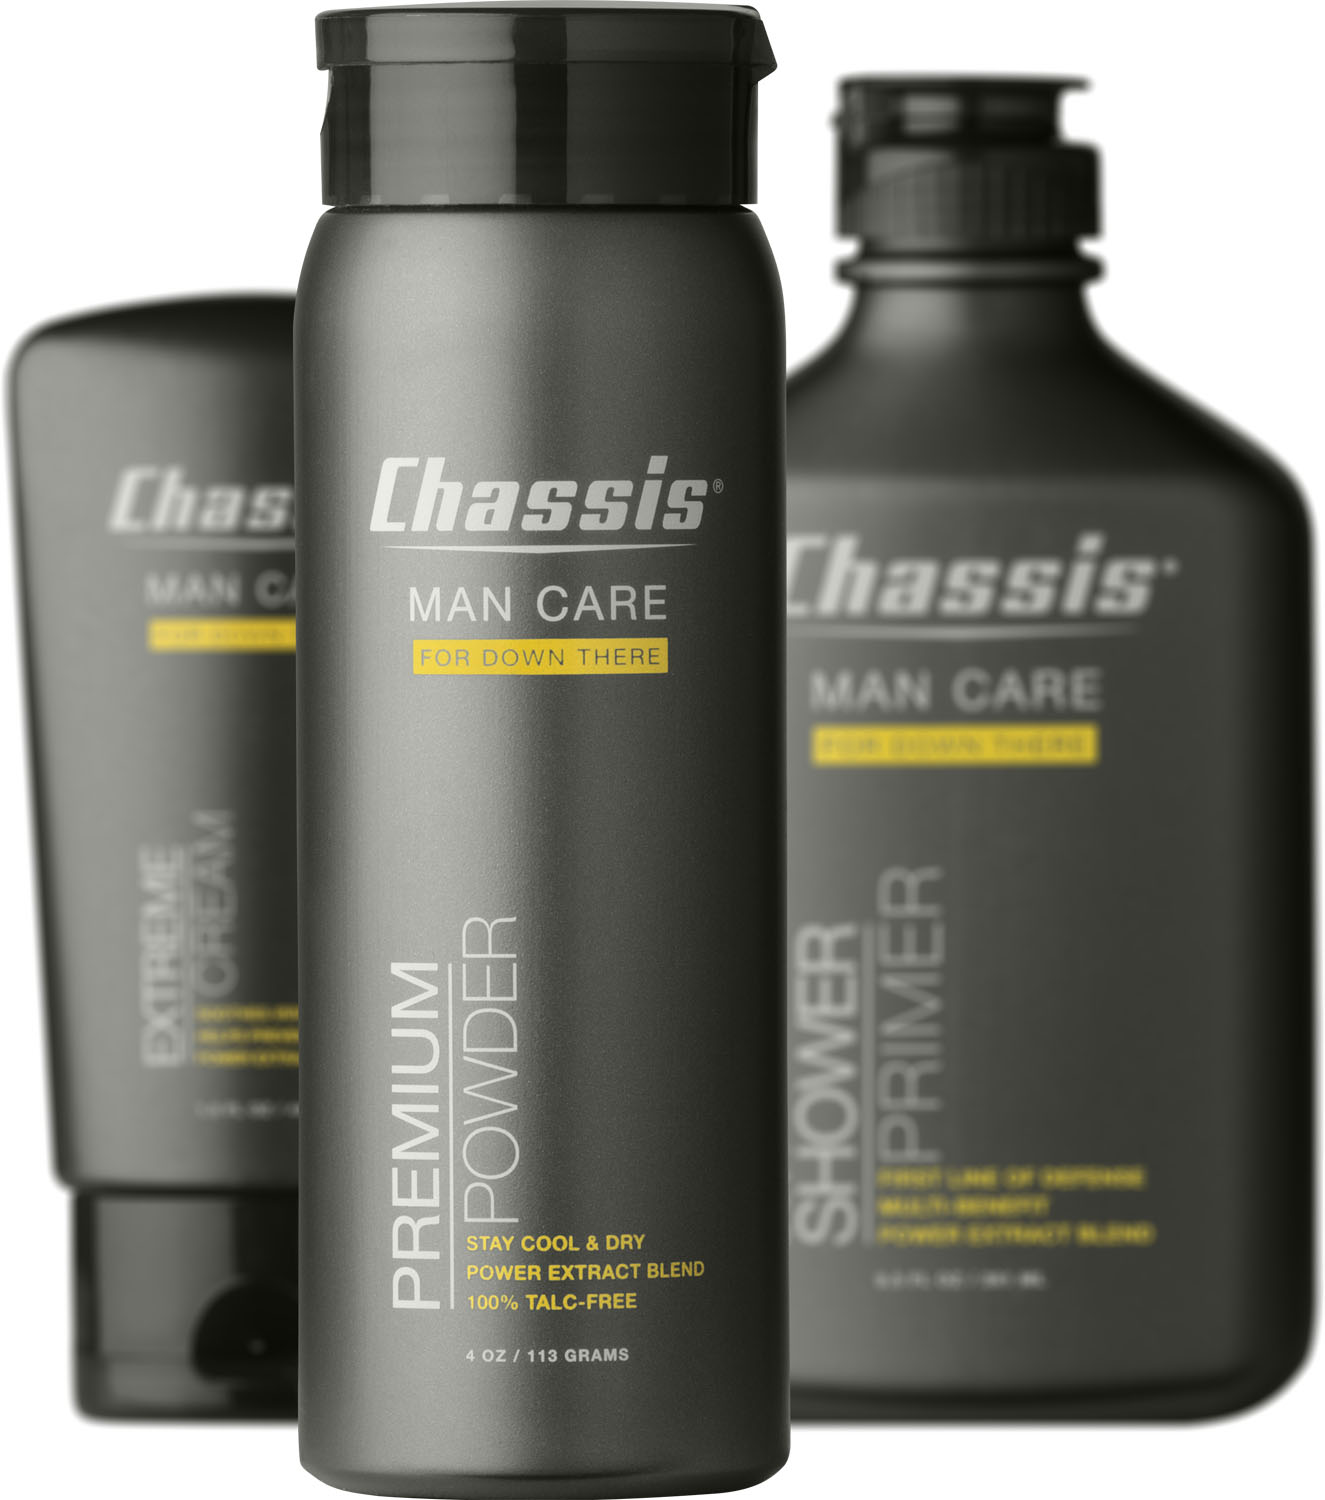 Chassis Premium Powder Review